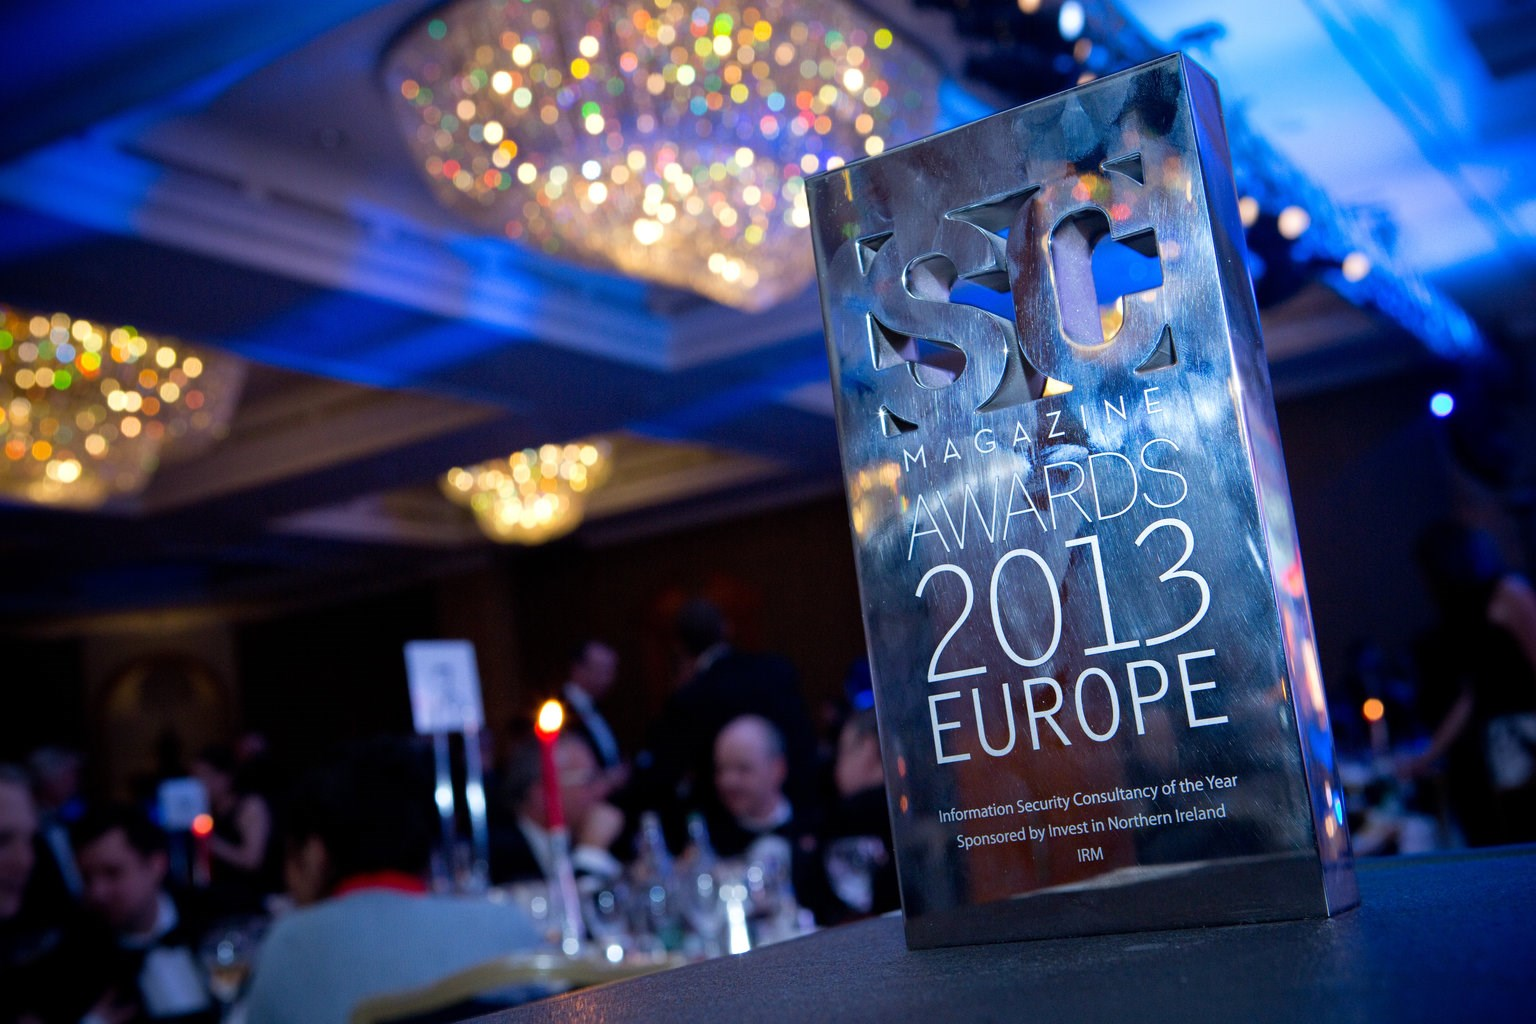 SC Magazine Awards Europe 2013 - highlights